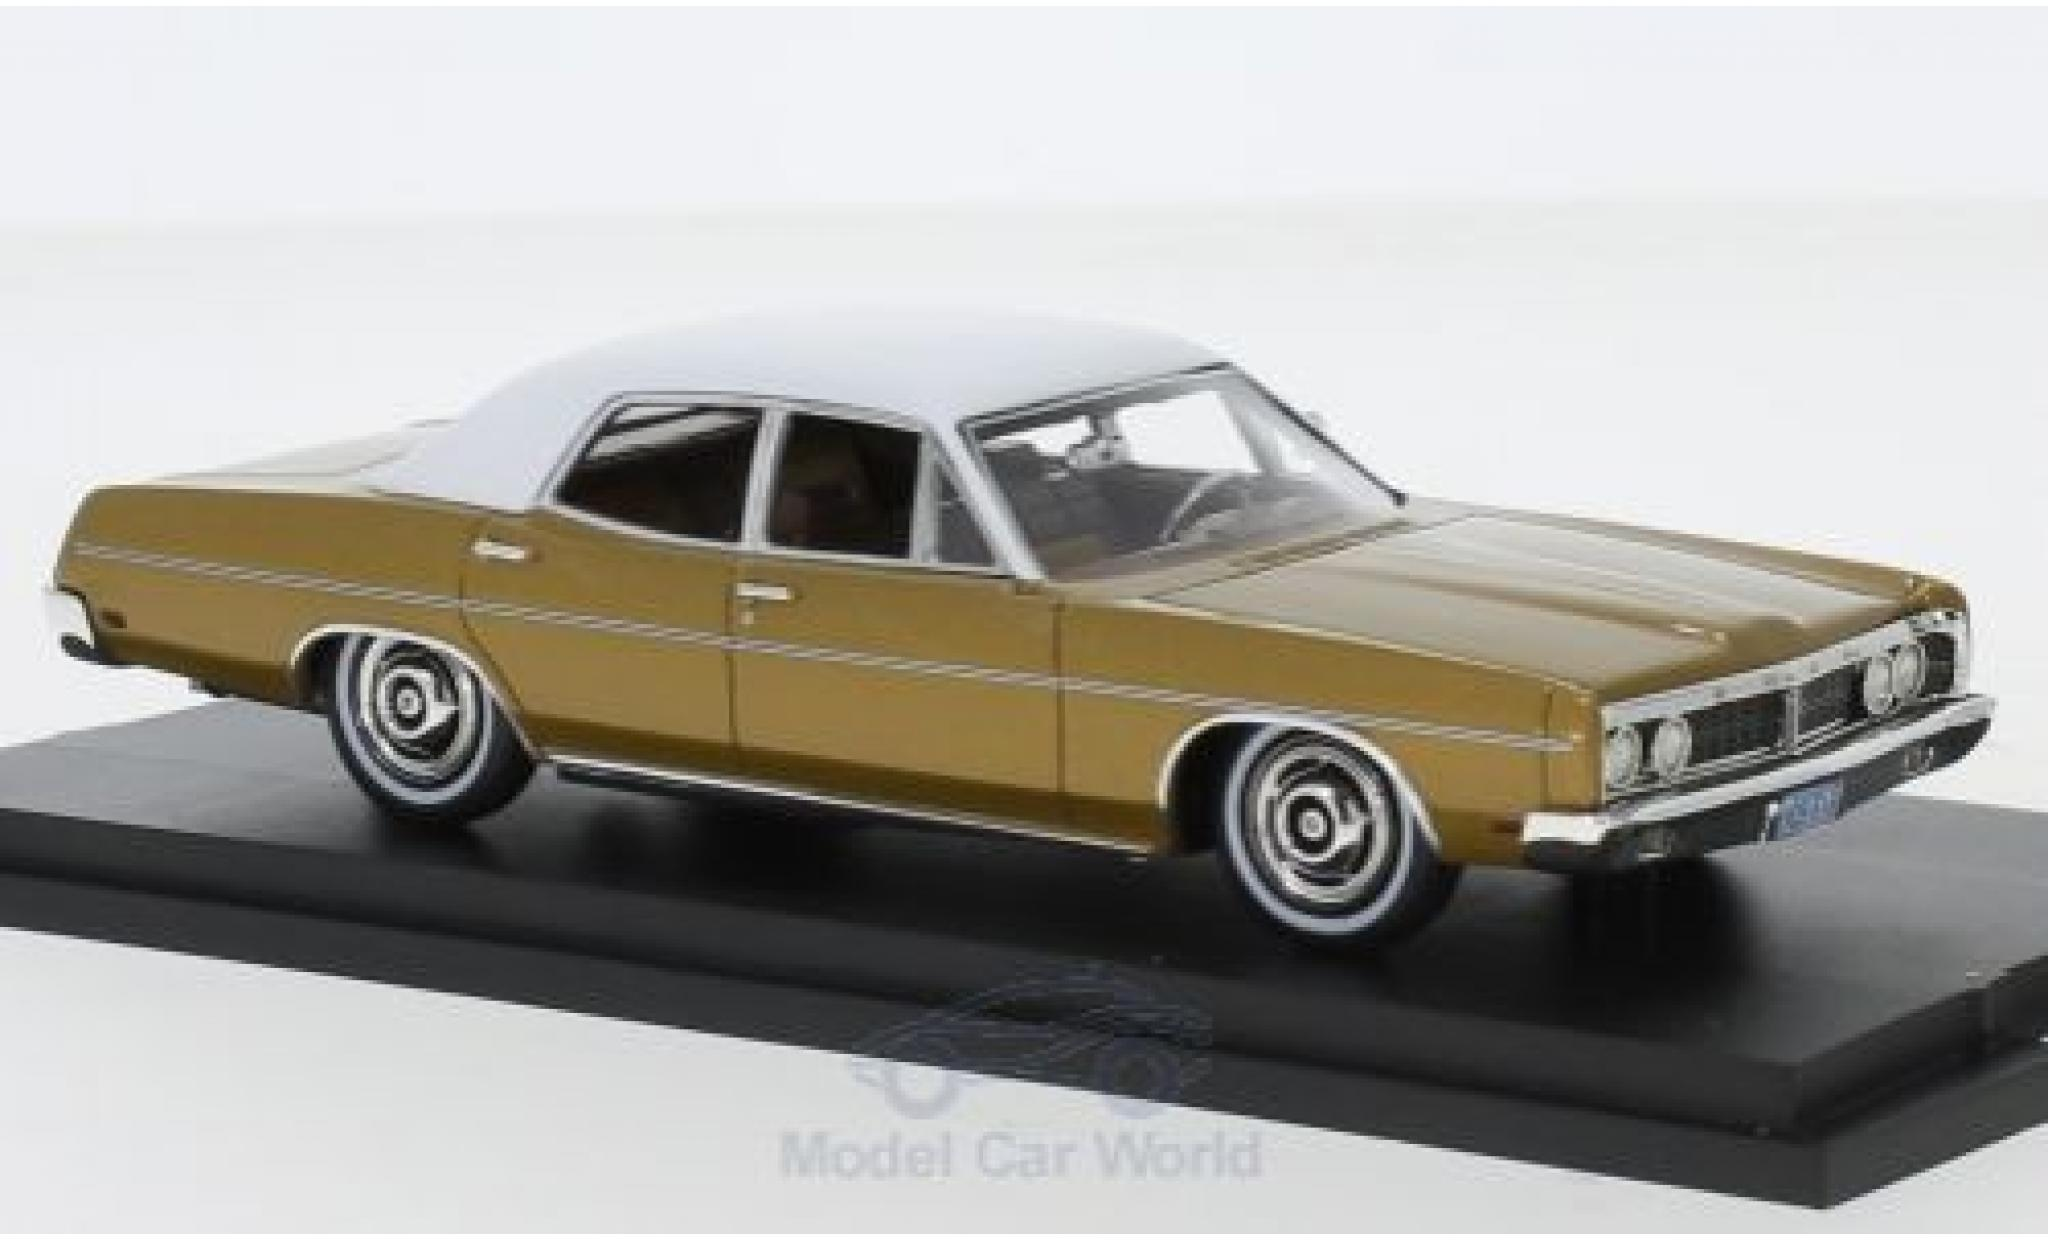 Ford Galaxy 1/43 Goldvarg Collections Galaxie metallic beige/white 1970